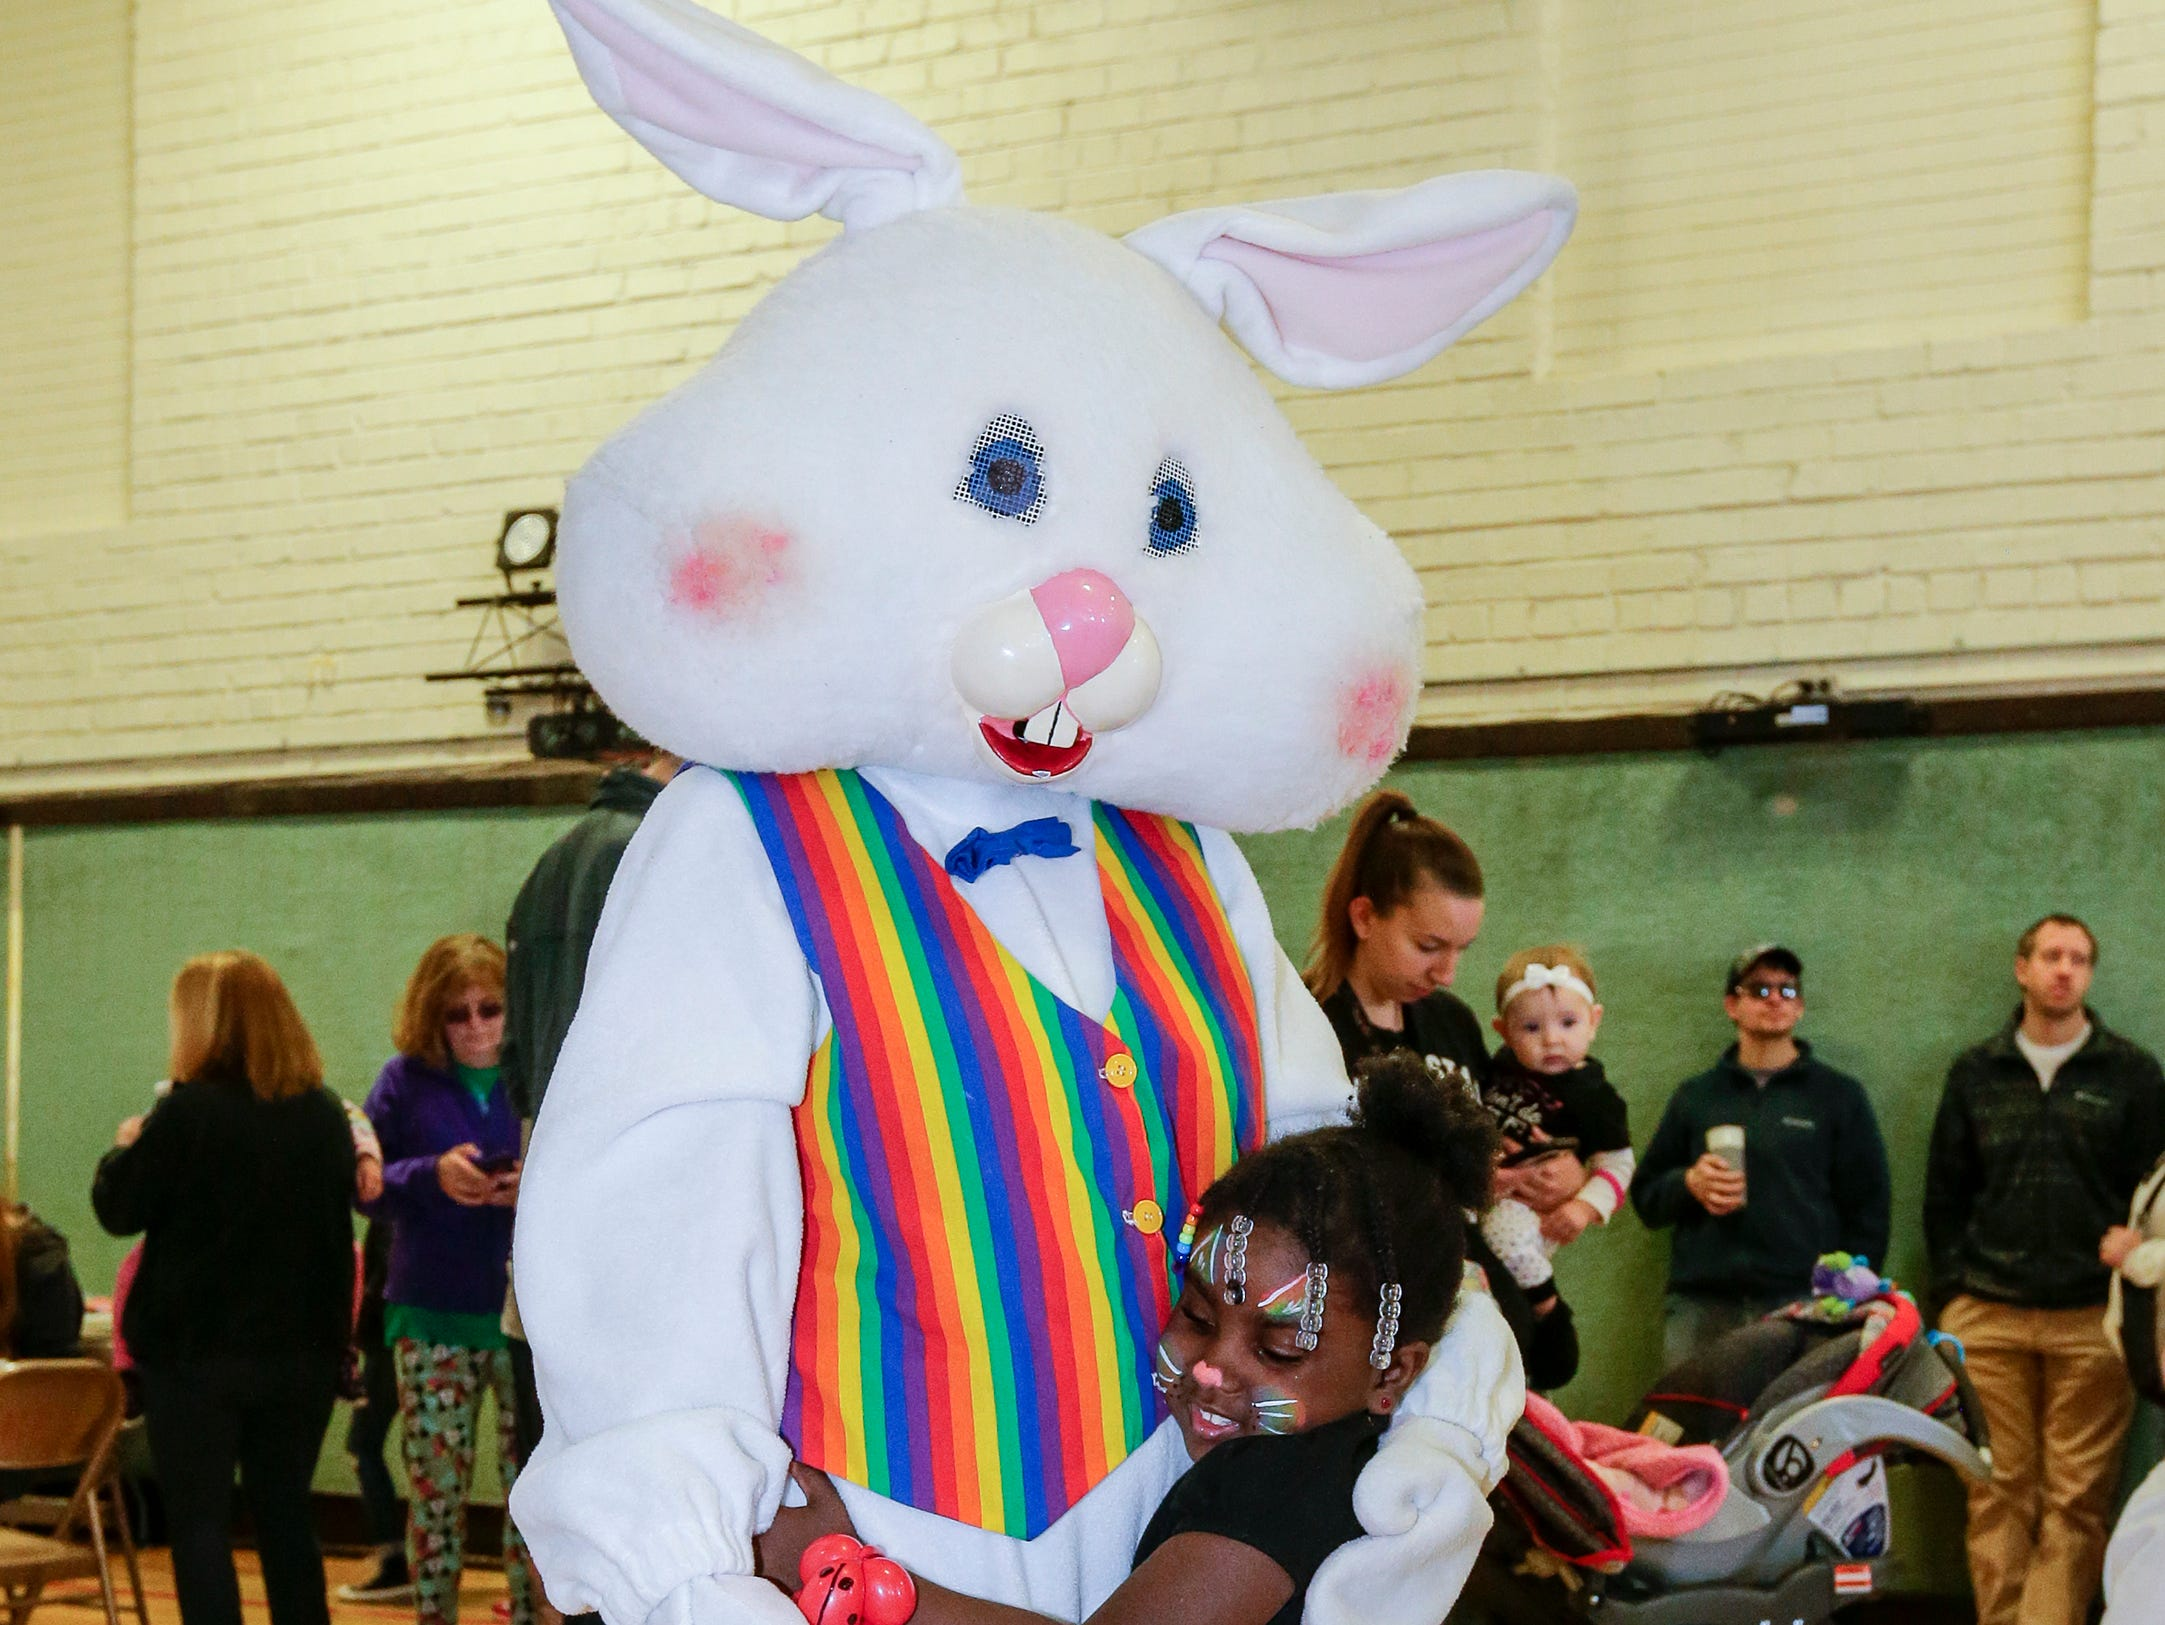 DeRosalind Spencer, 4, hugs the Easter bunny during the Easter Eggstravaganza at Citizen Park Saturday, April 20, 2019, in Manitowoc, Wis. Joshua Clark/USA TODAY NETWORK-Wisconsin